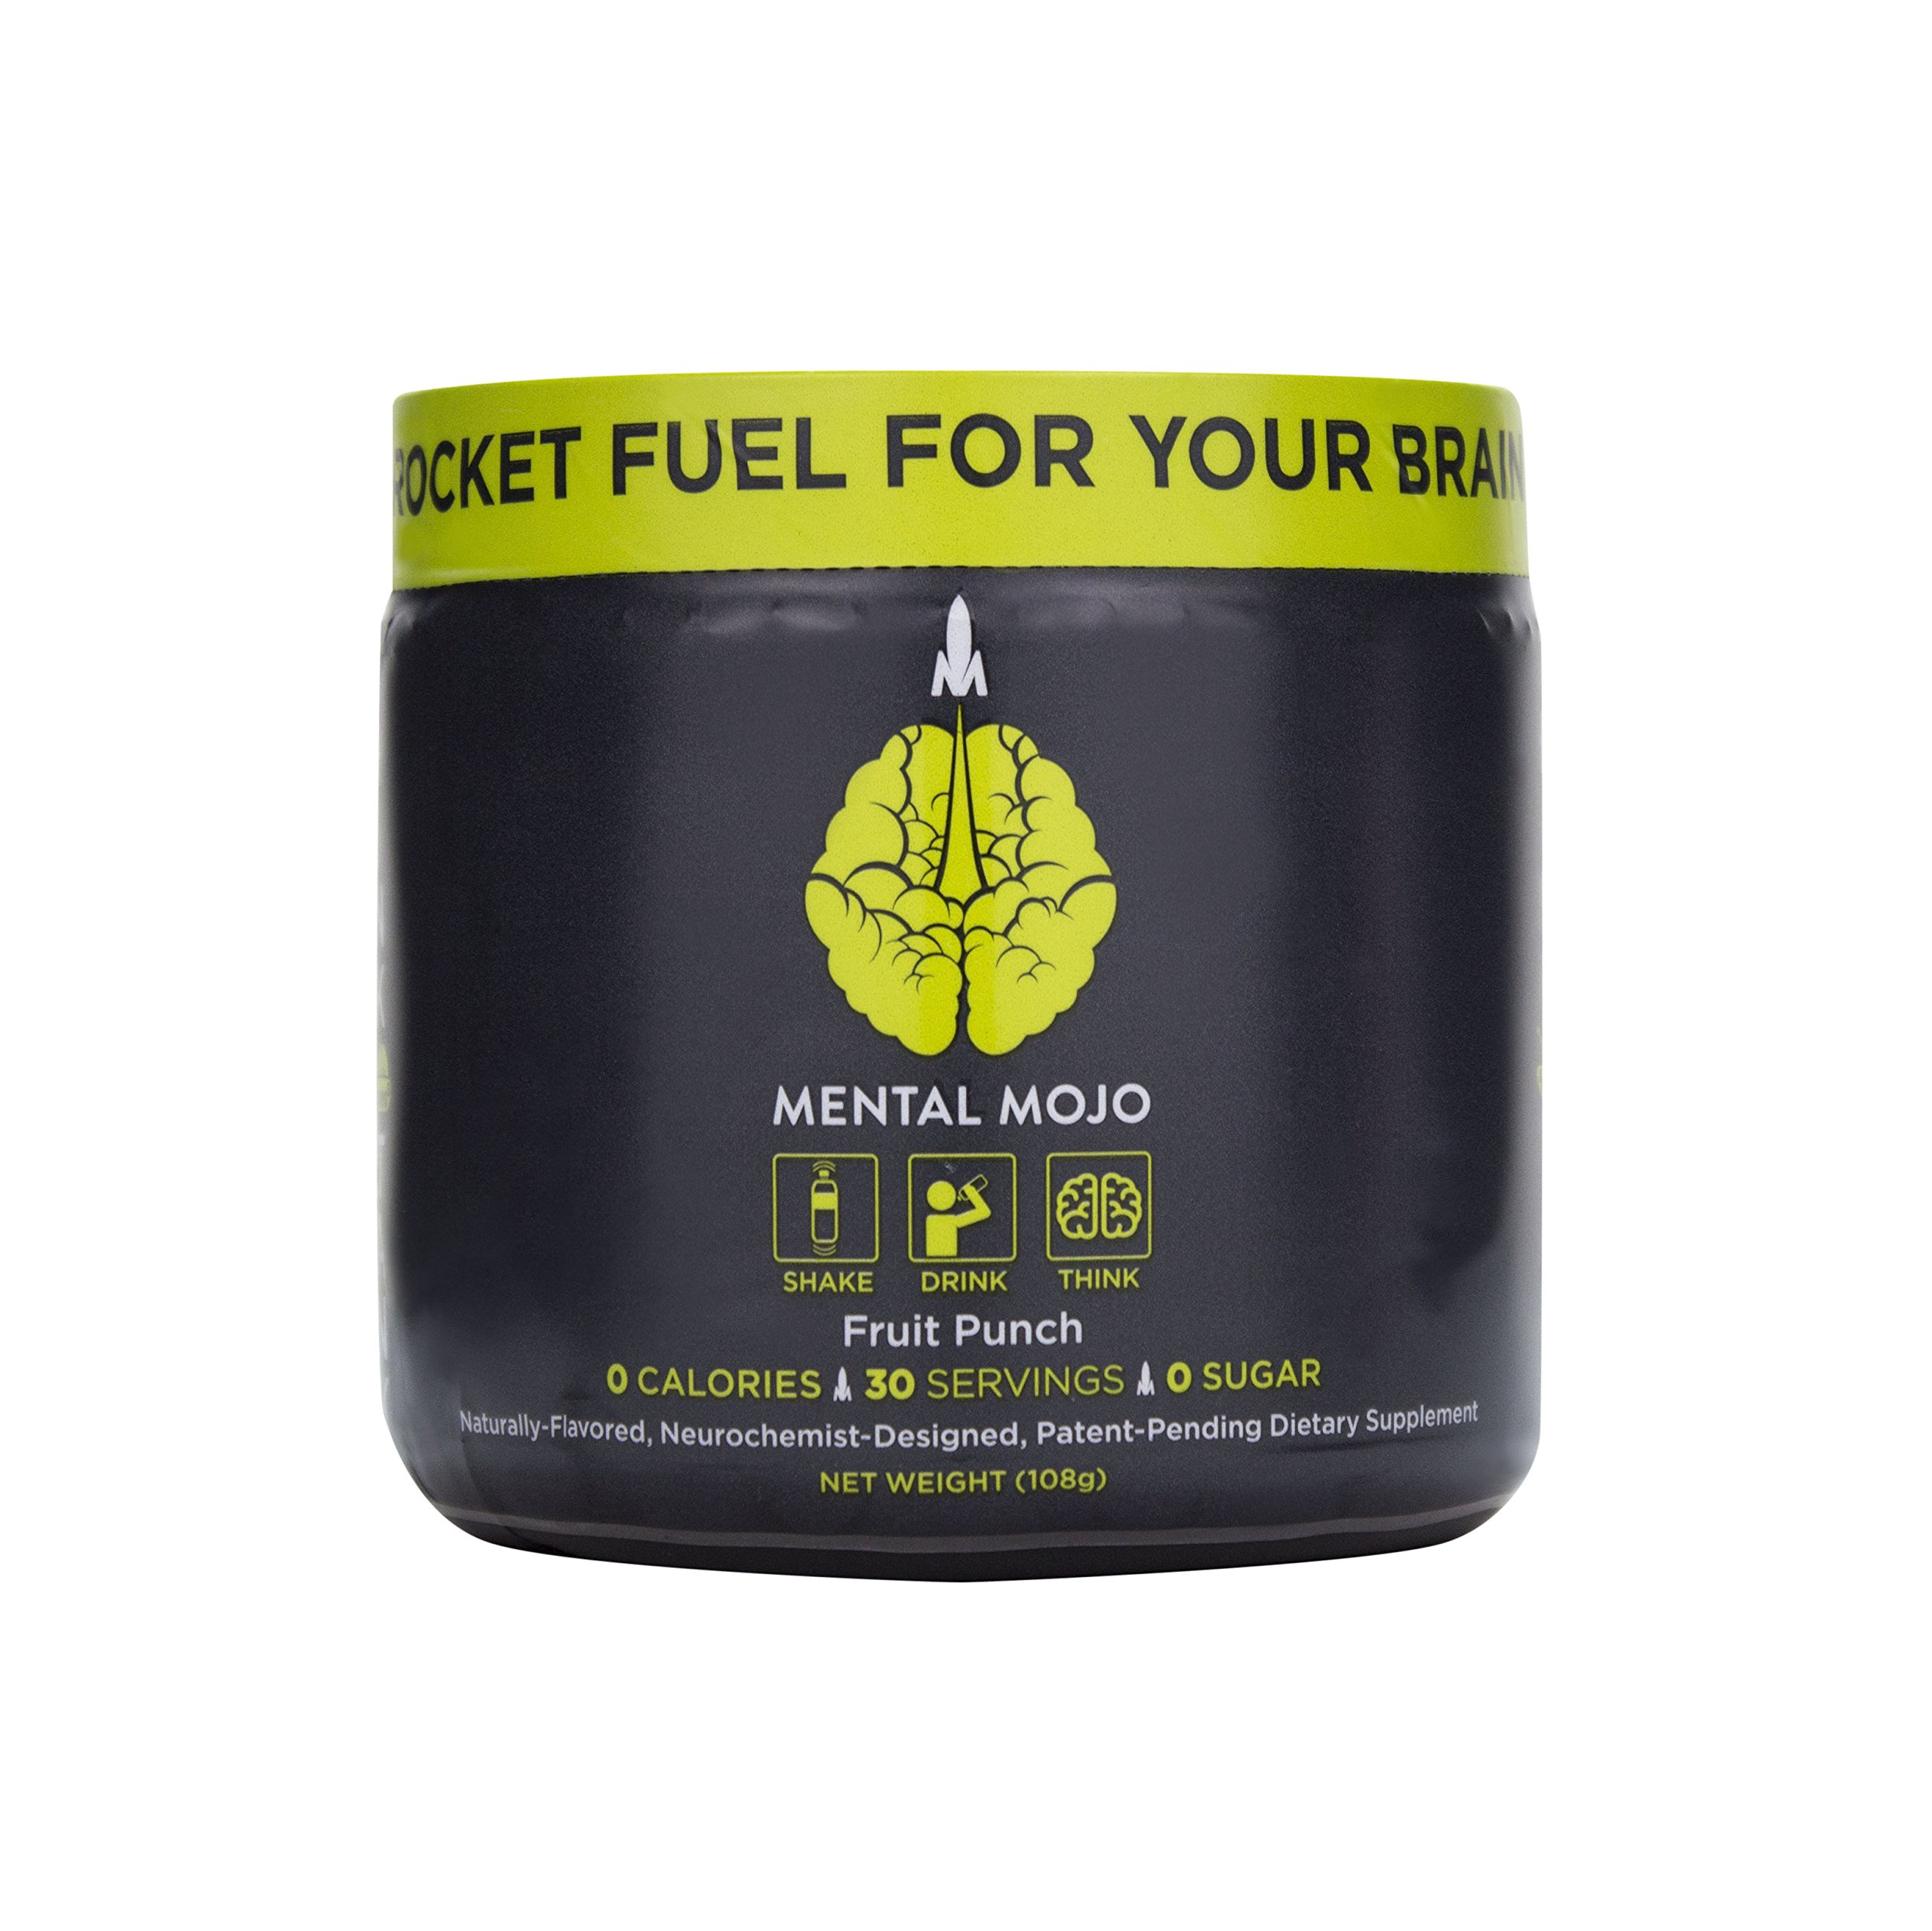 (30-Servings) Mental Mojo Nootropic Stack: Rocket Fuel For Your Brain - Nootropic Energy Drink Mix Brain Supplement - Patent-Pending Brain Booster Drink Boosts Focus, Memory and Energy (Focus Fruit Pu